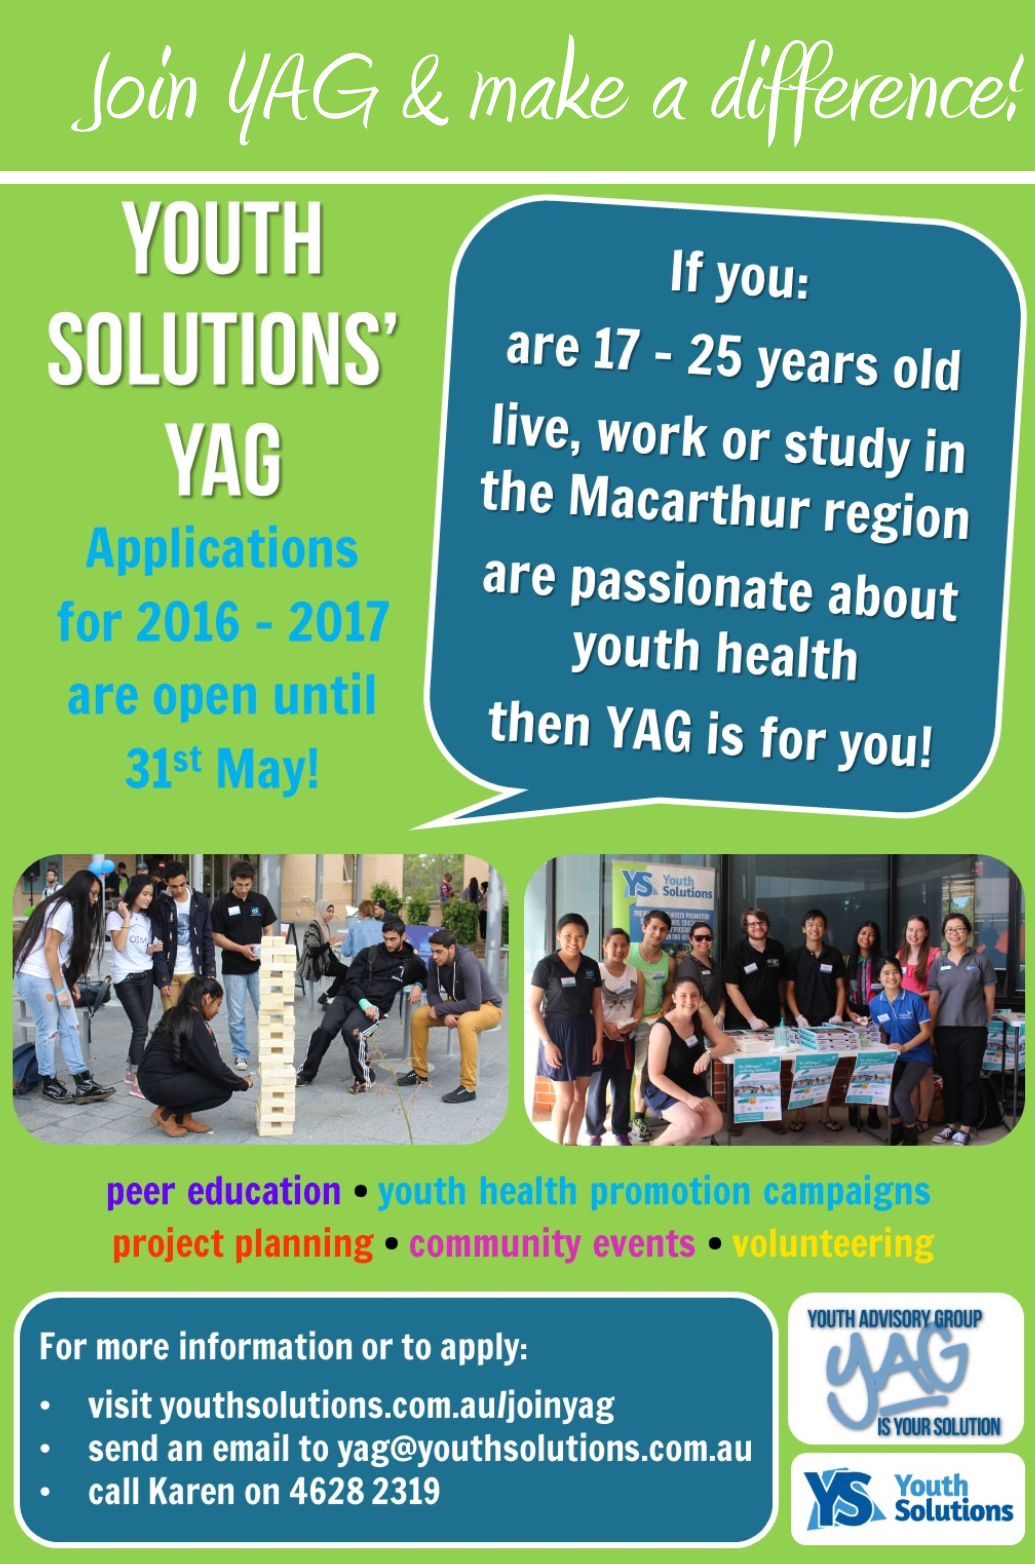 Join YAG and make a difference!